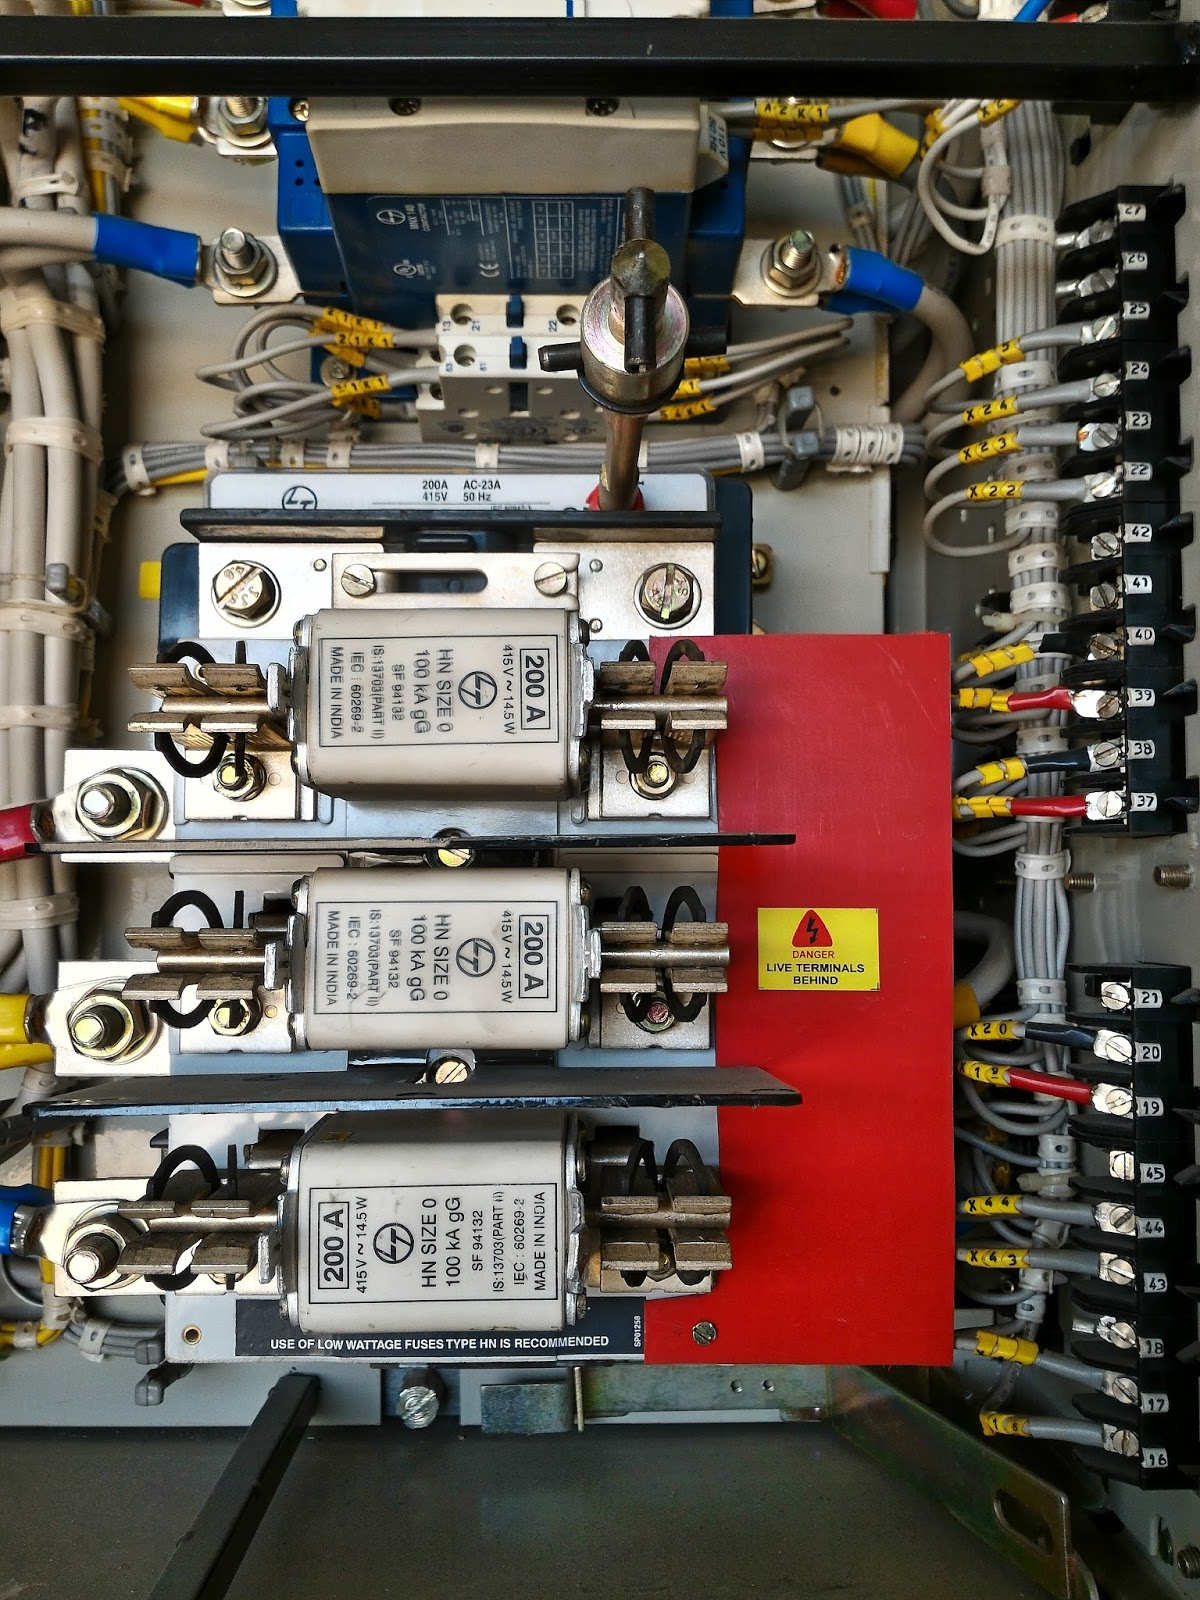 Lt Motor Feeders And Incomer Electrical Blog Short Circuit Appliances In Lv Switchgear System Are Protected Against Over Load Conditions By Fuses Or